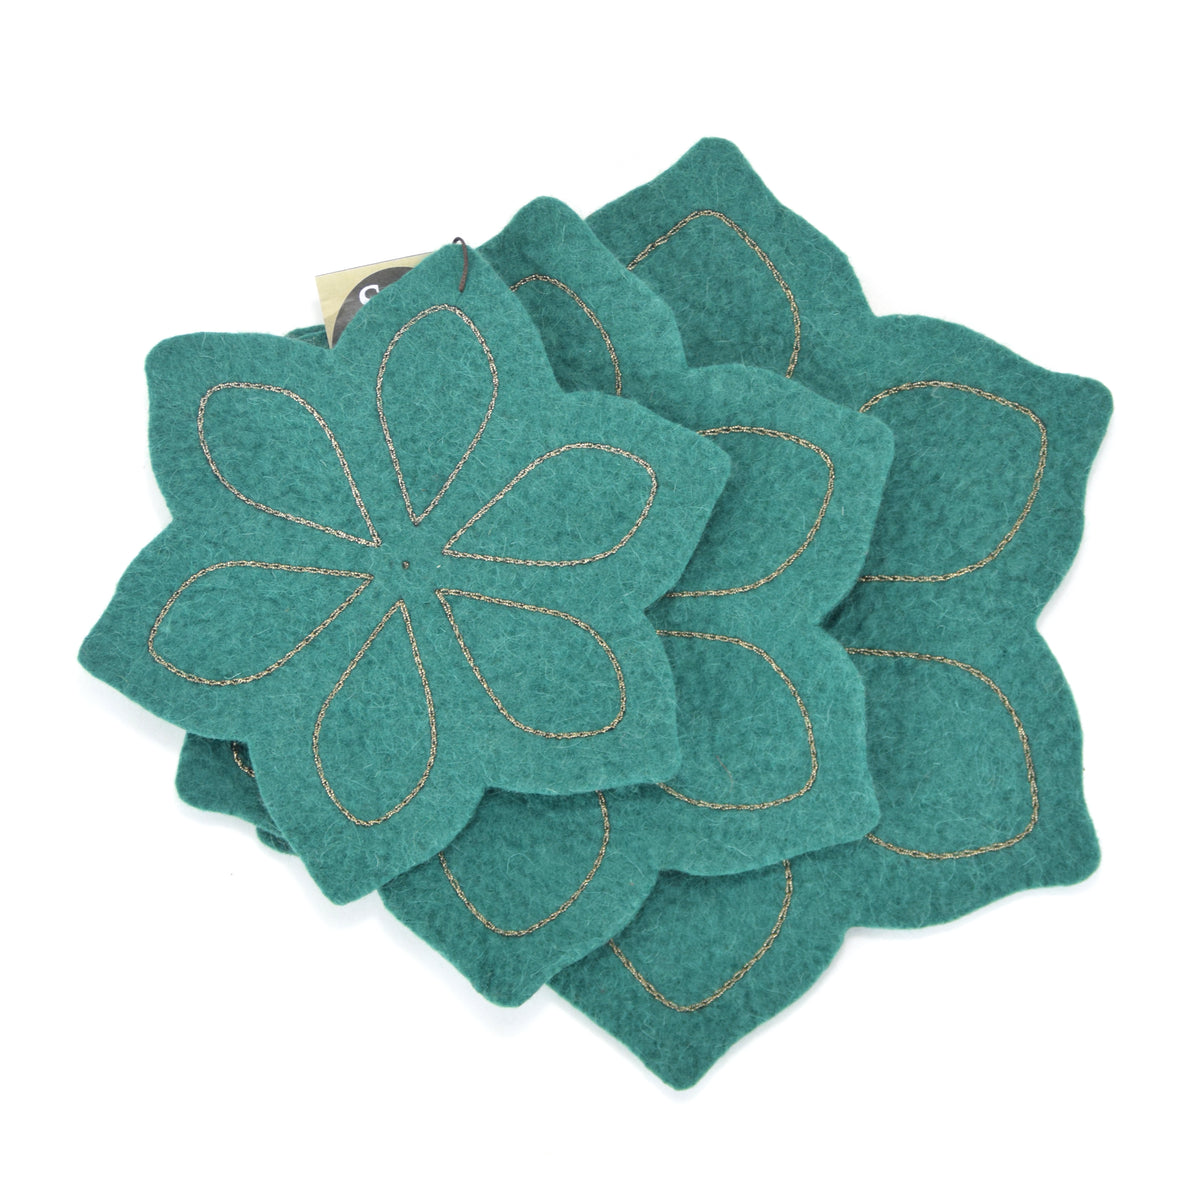 Chloe Felted Coaster Set - Military Green